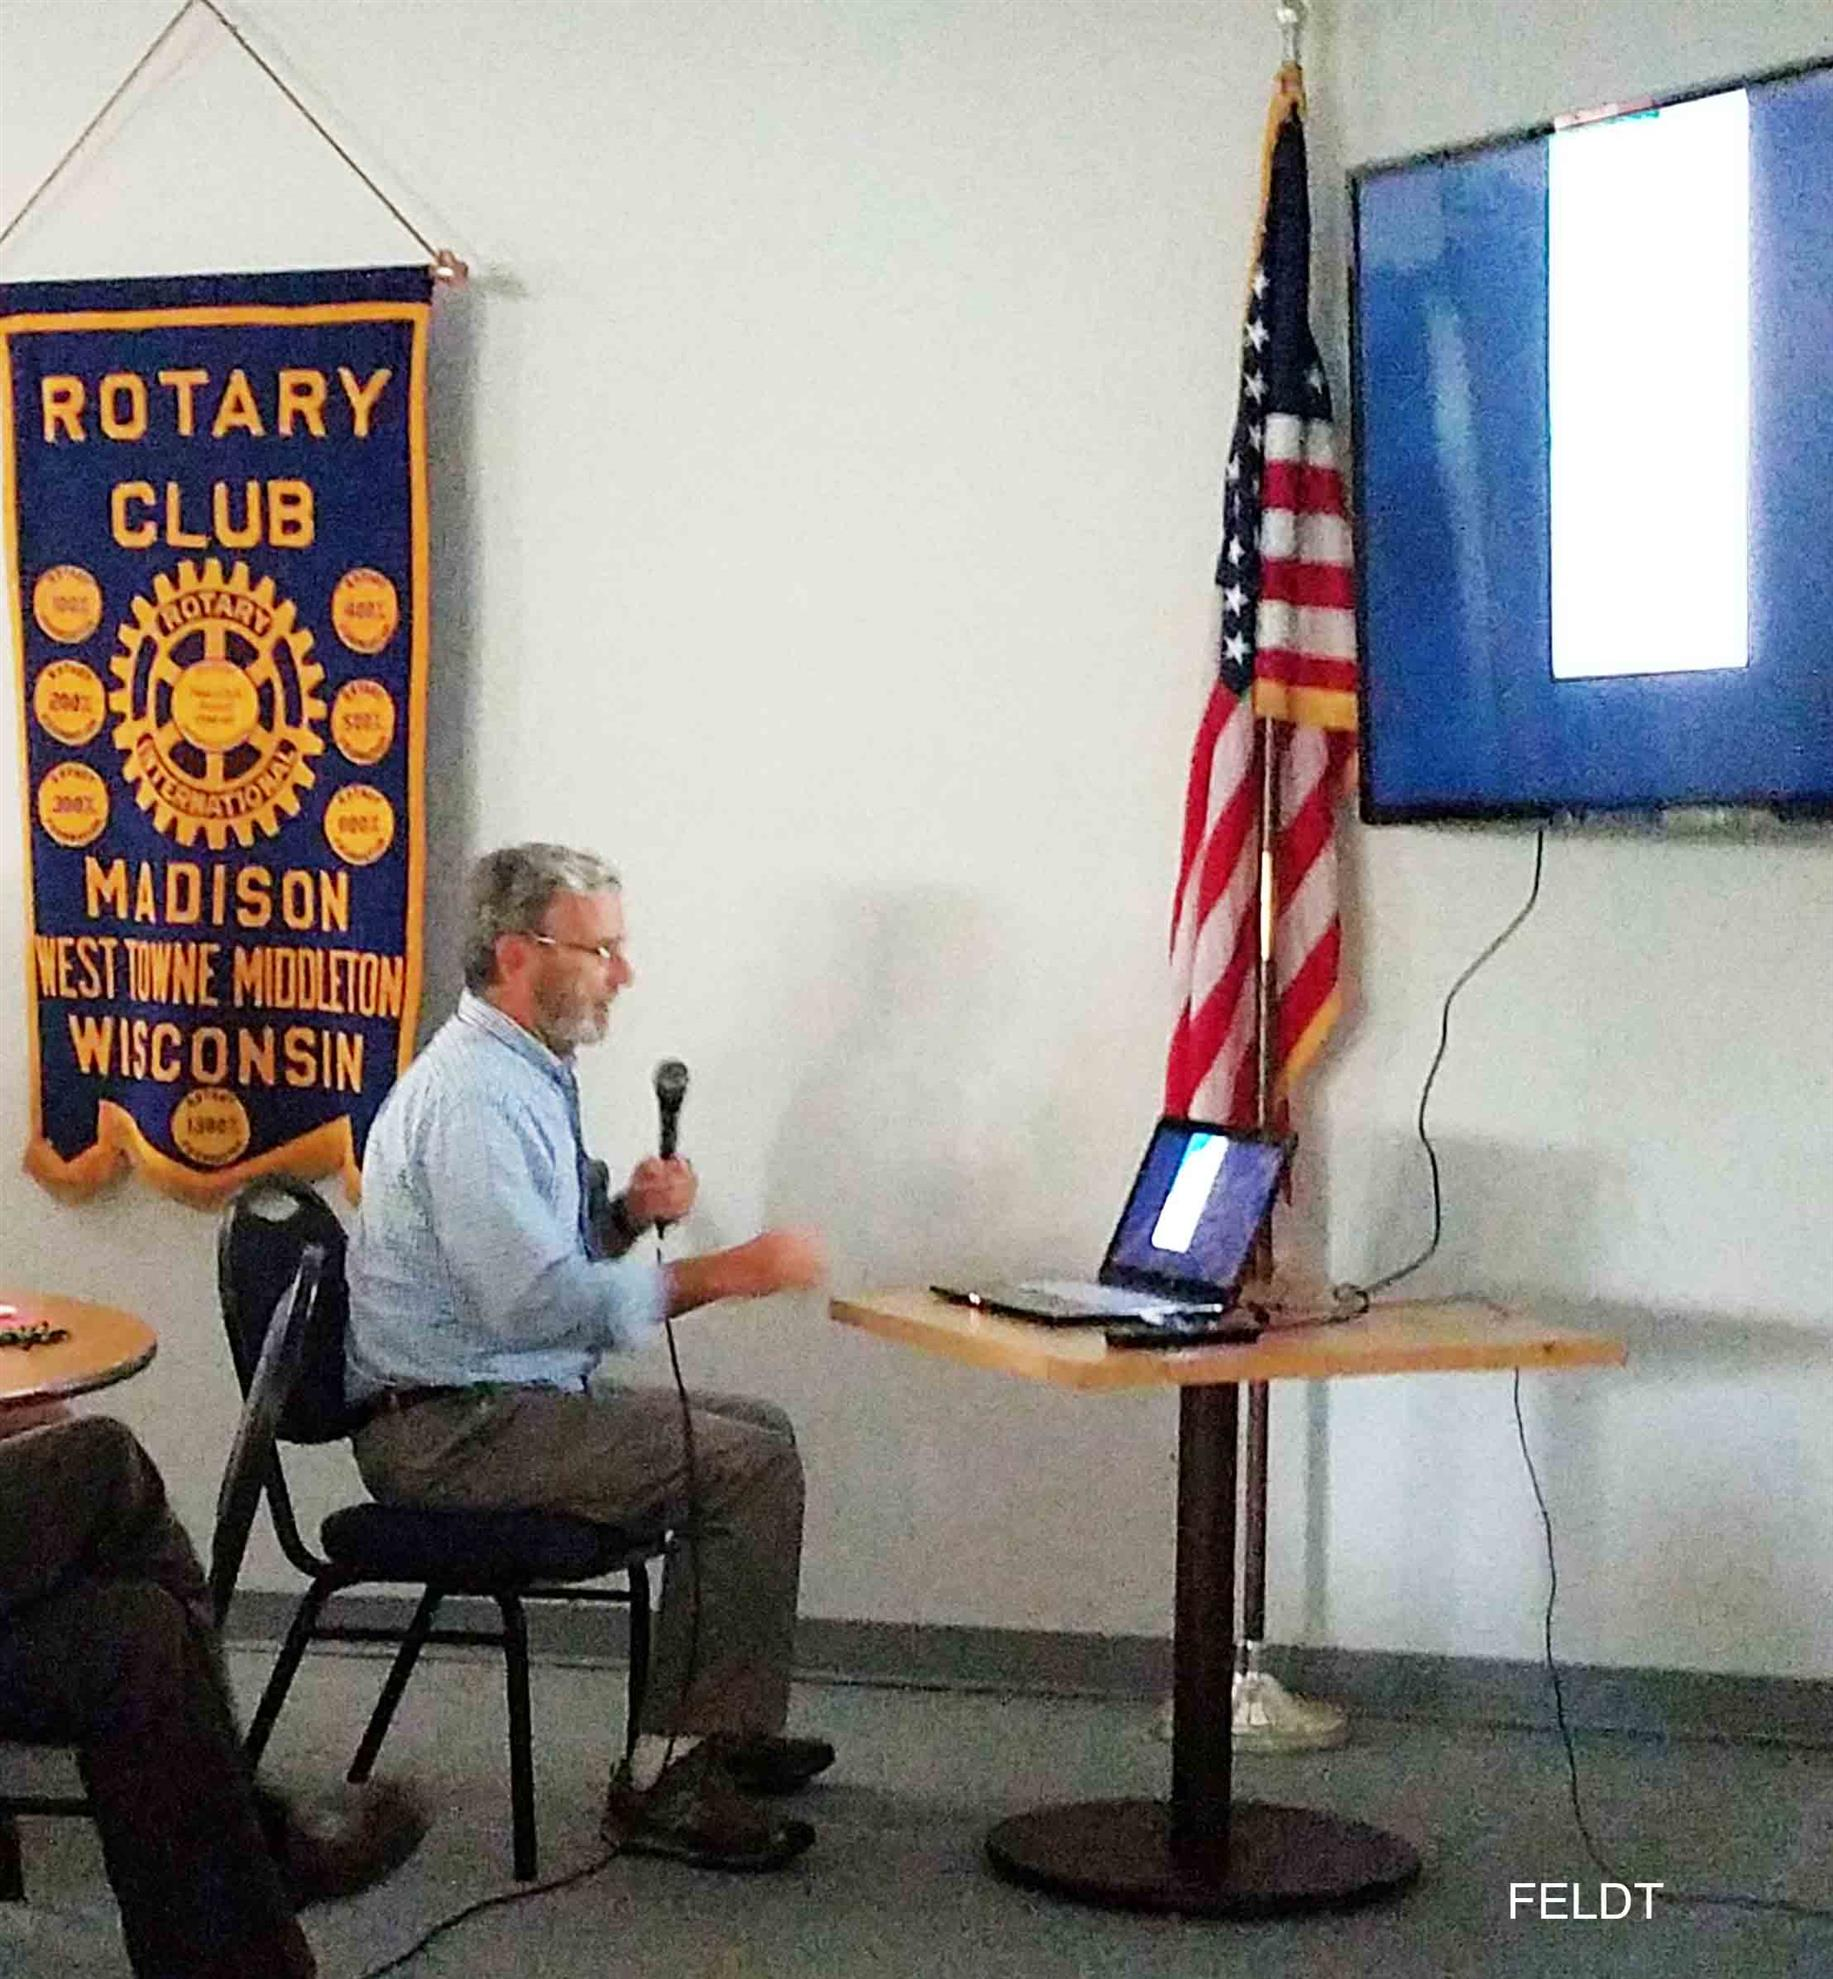 Stories | Rotary Club of Madison West Towne-Middleton